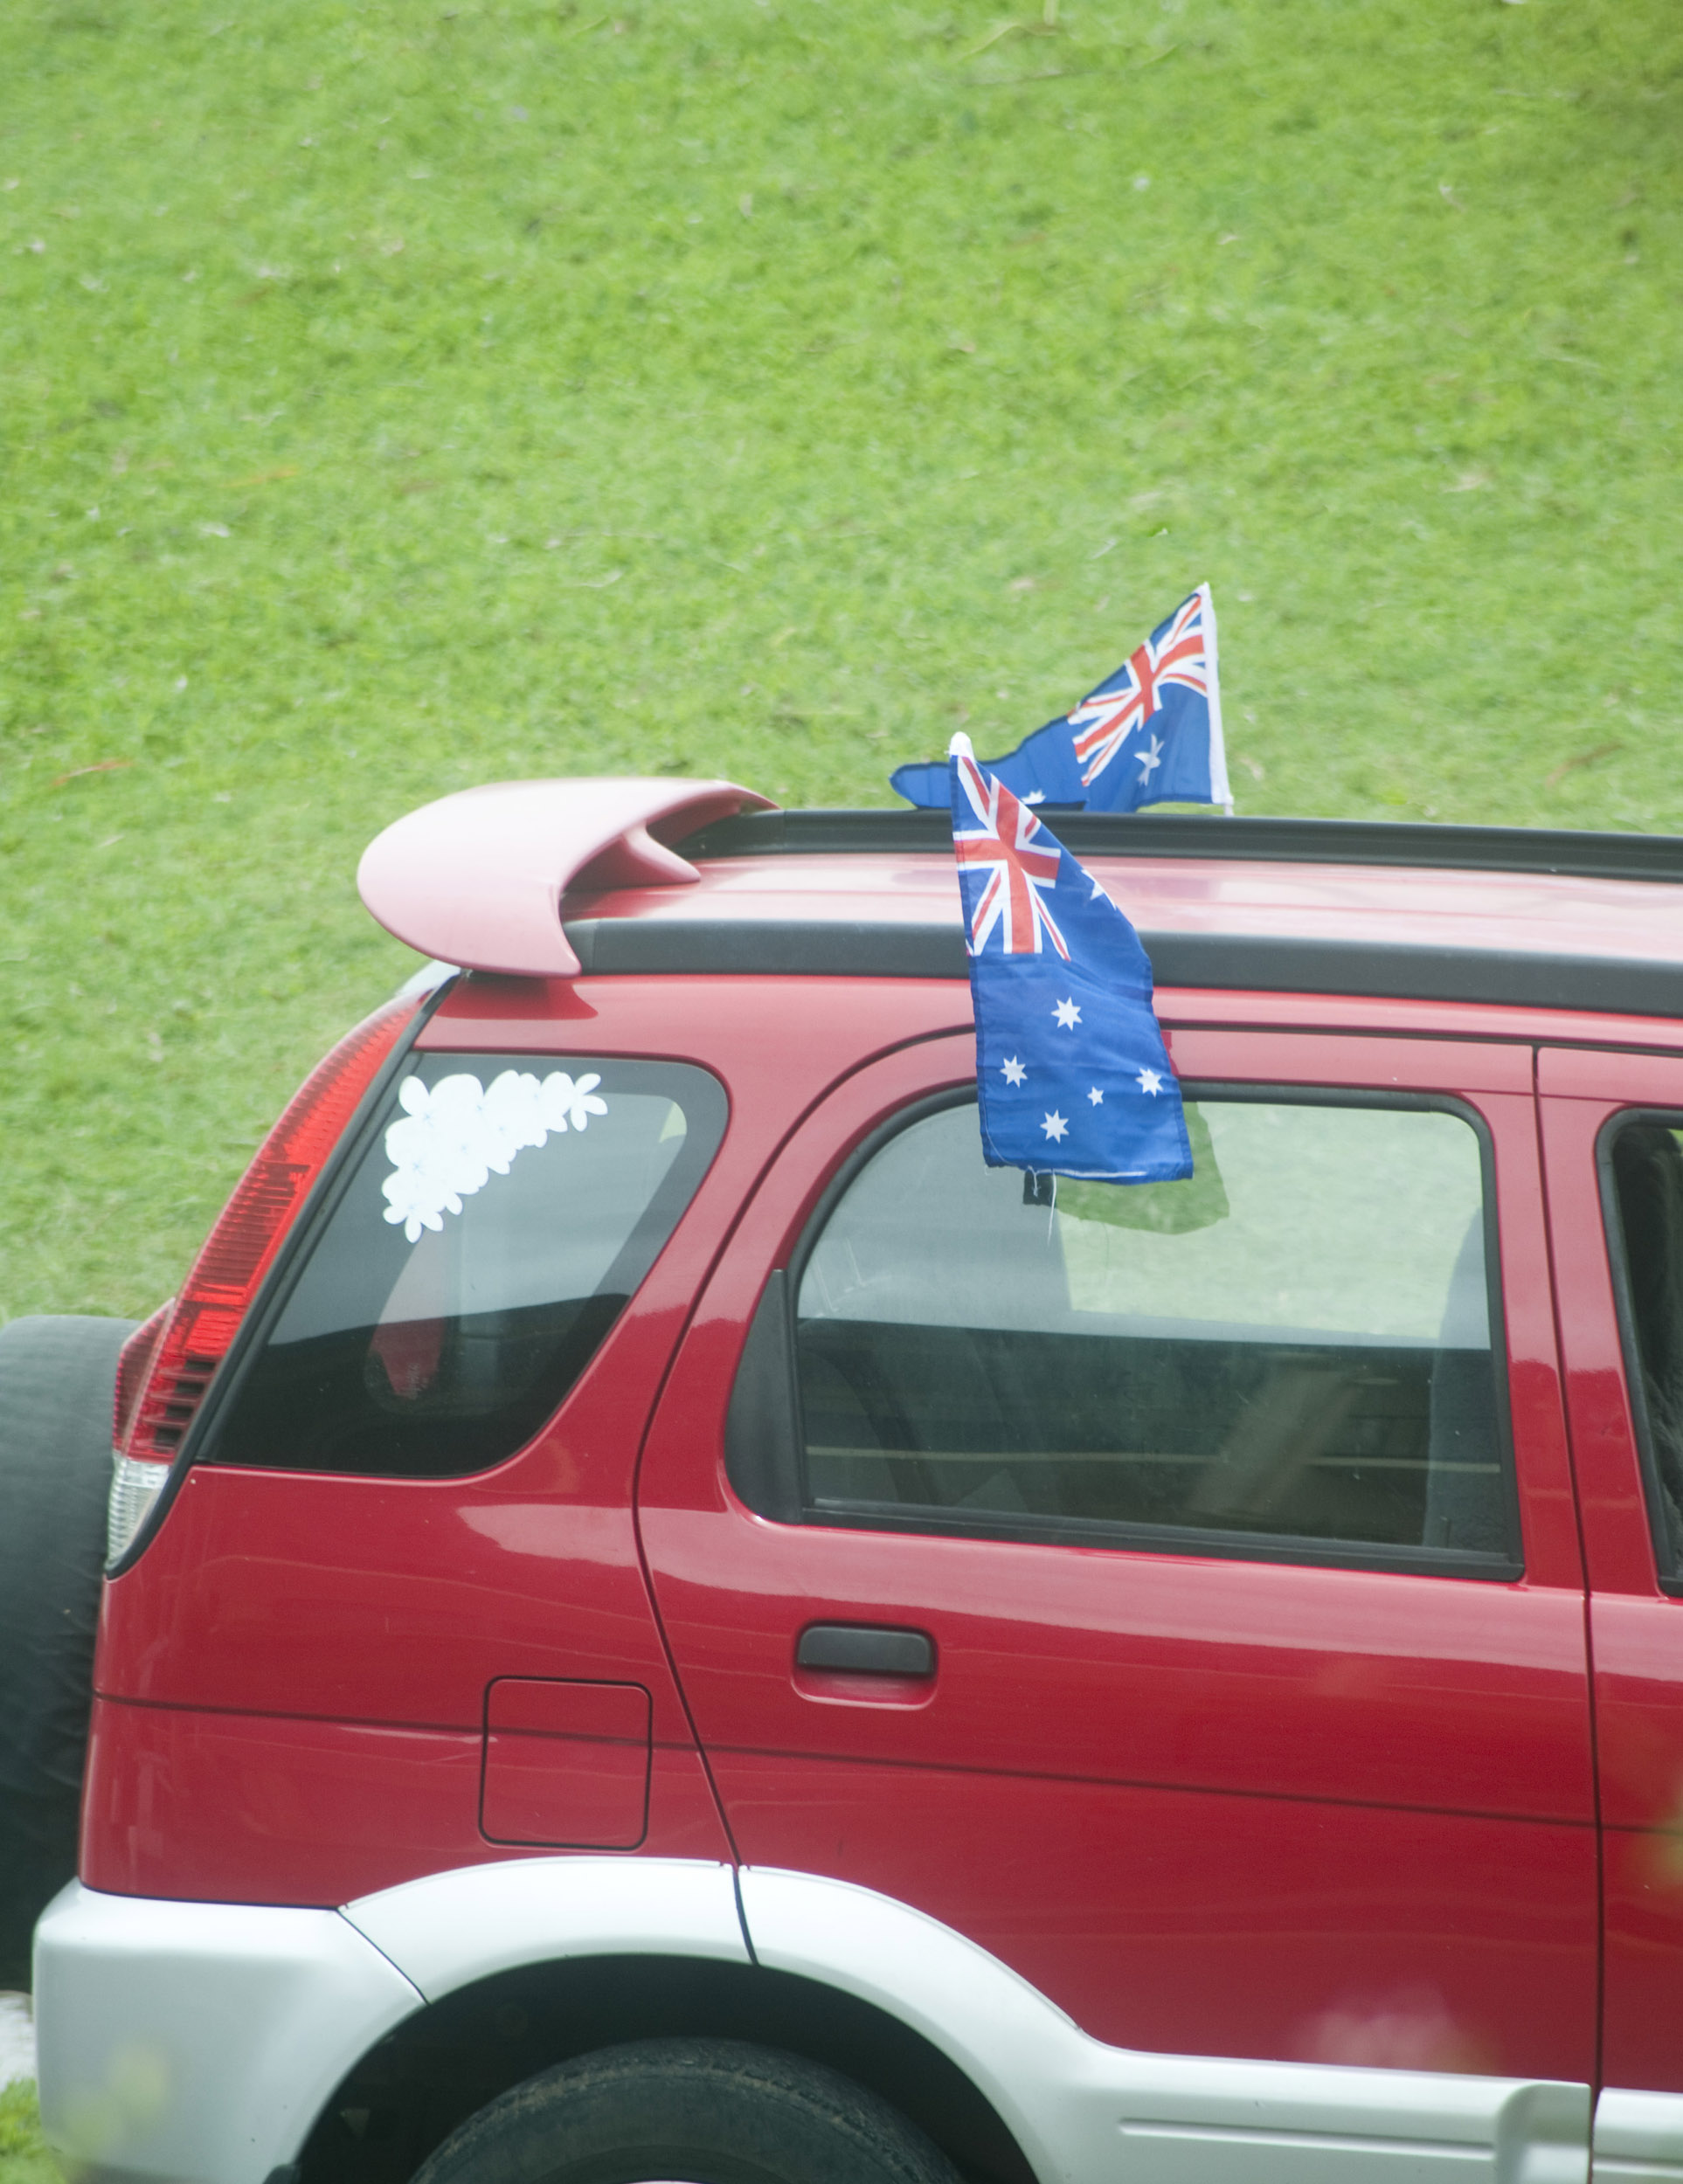 a car decorated with flags for australia day